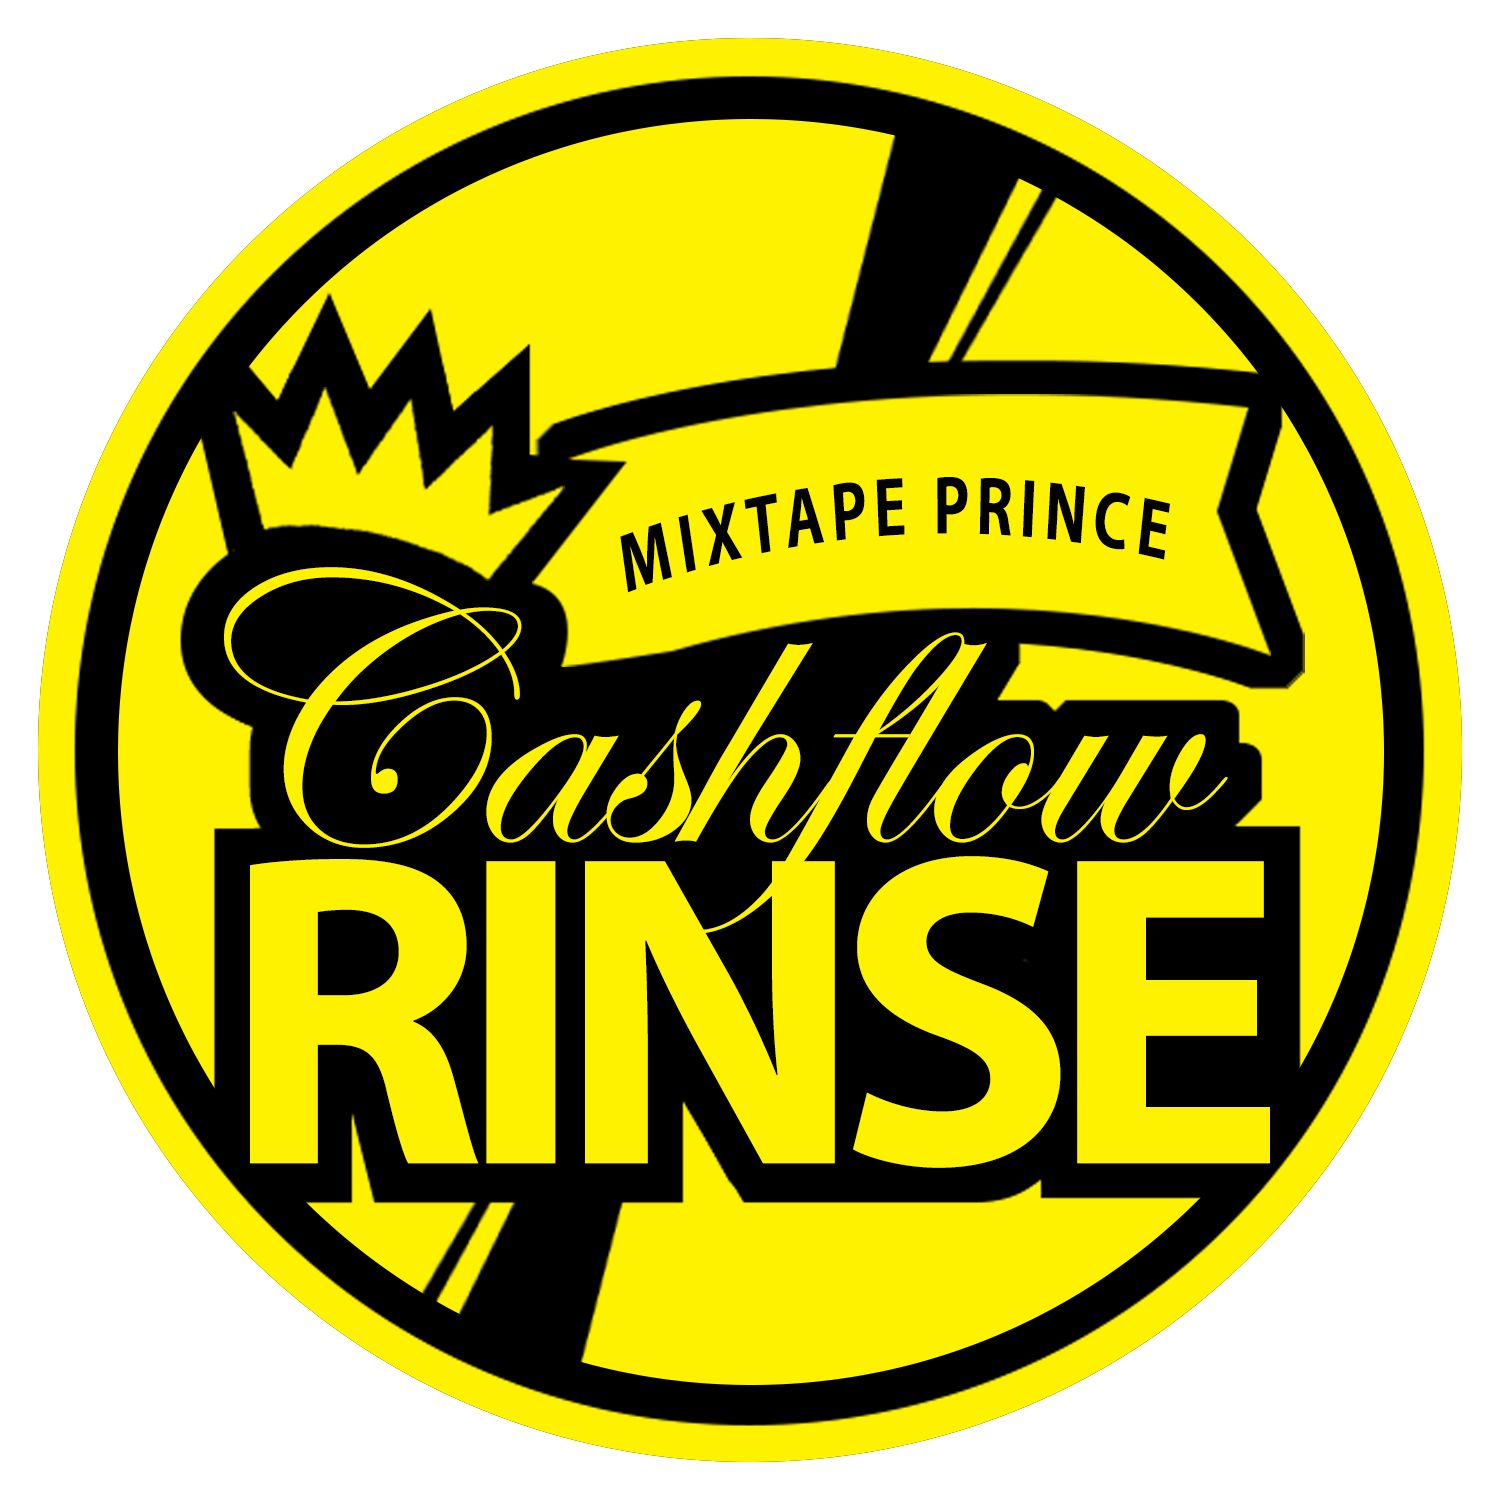 LEVEL UP MIXTAPE BY CASHFLOW RINSE |2019 APRIL DANCEHALL MIX